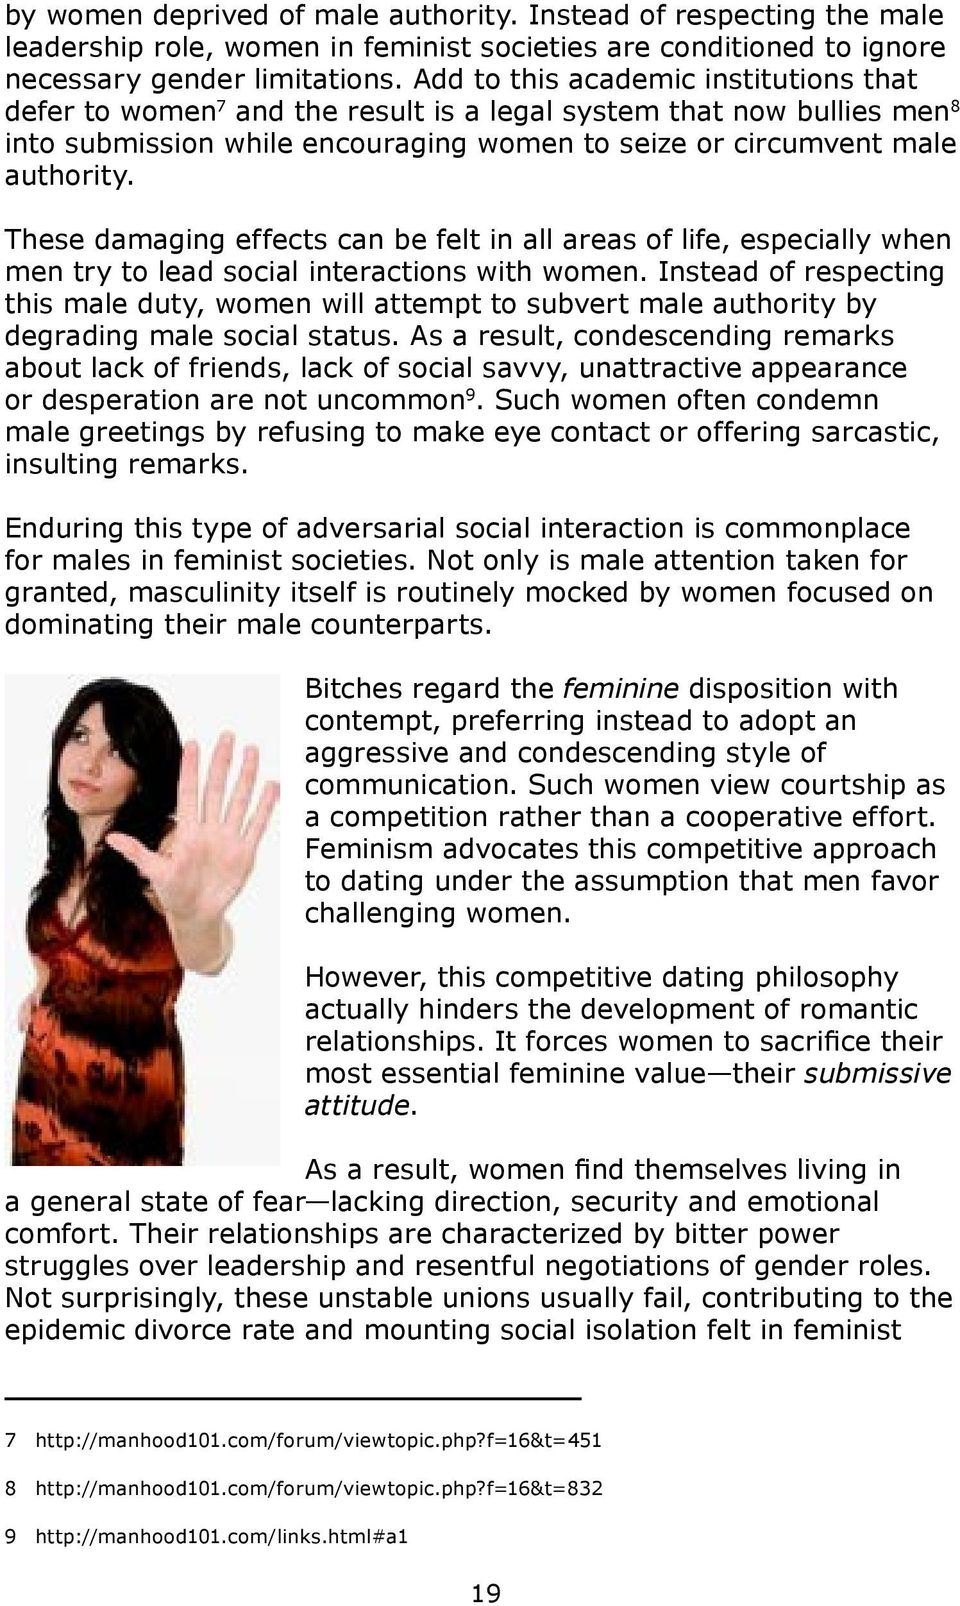 These damaging effects can be felt in all areas of life, especially when men try to lead social interactions with women.